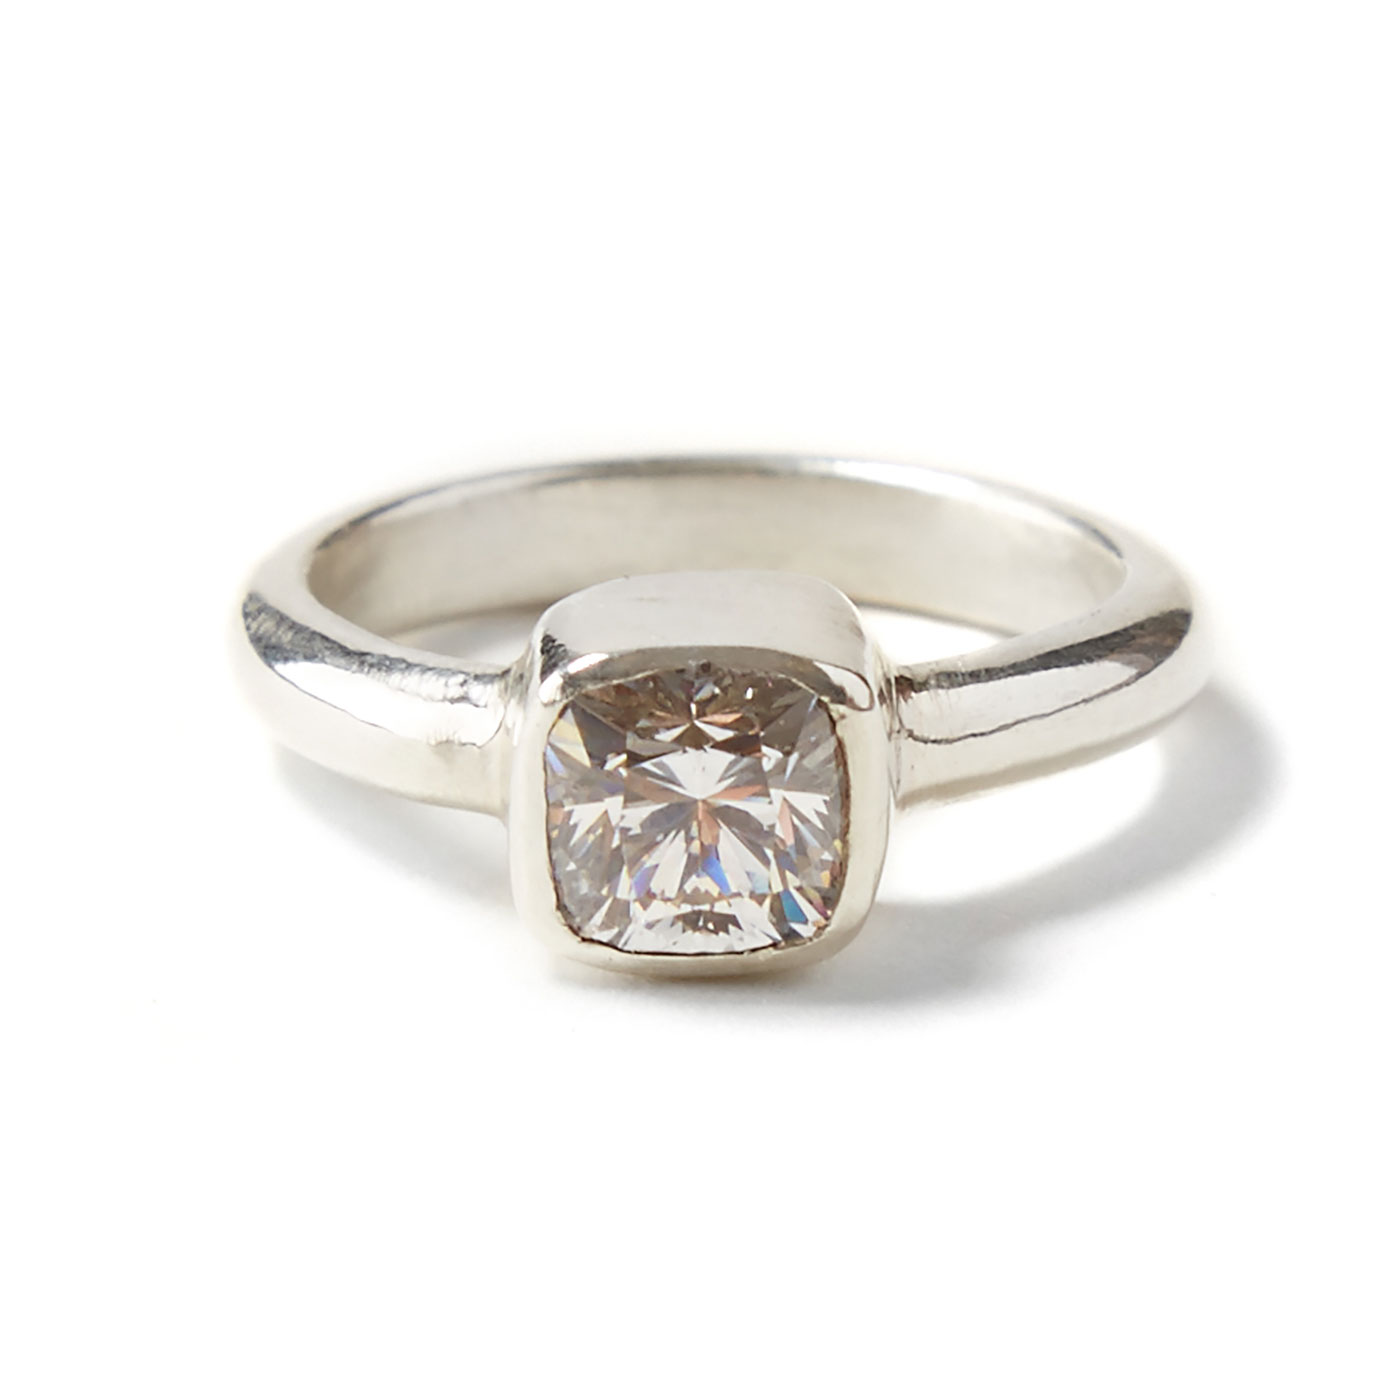 Cushion Cut 1ct. Ethical Diamond Ring set in 9ct. White Gold.